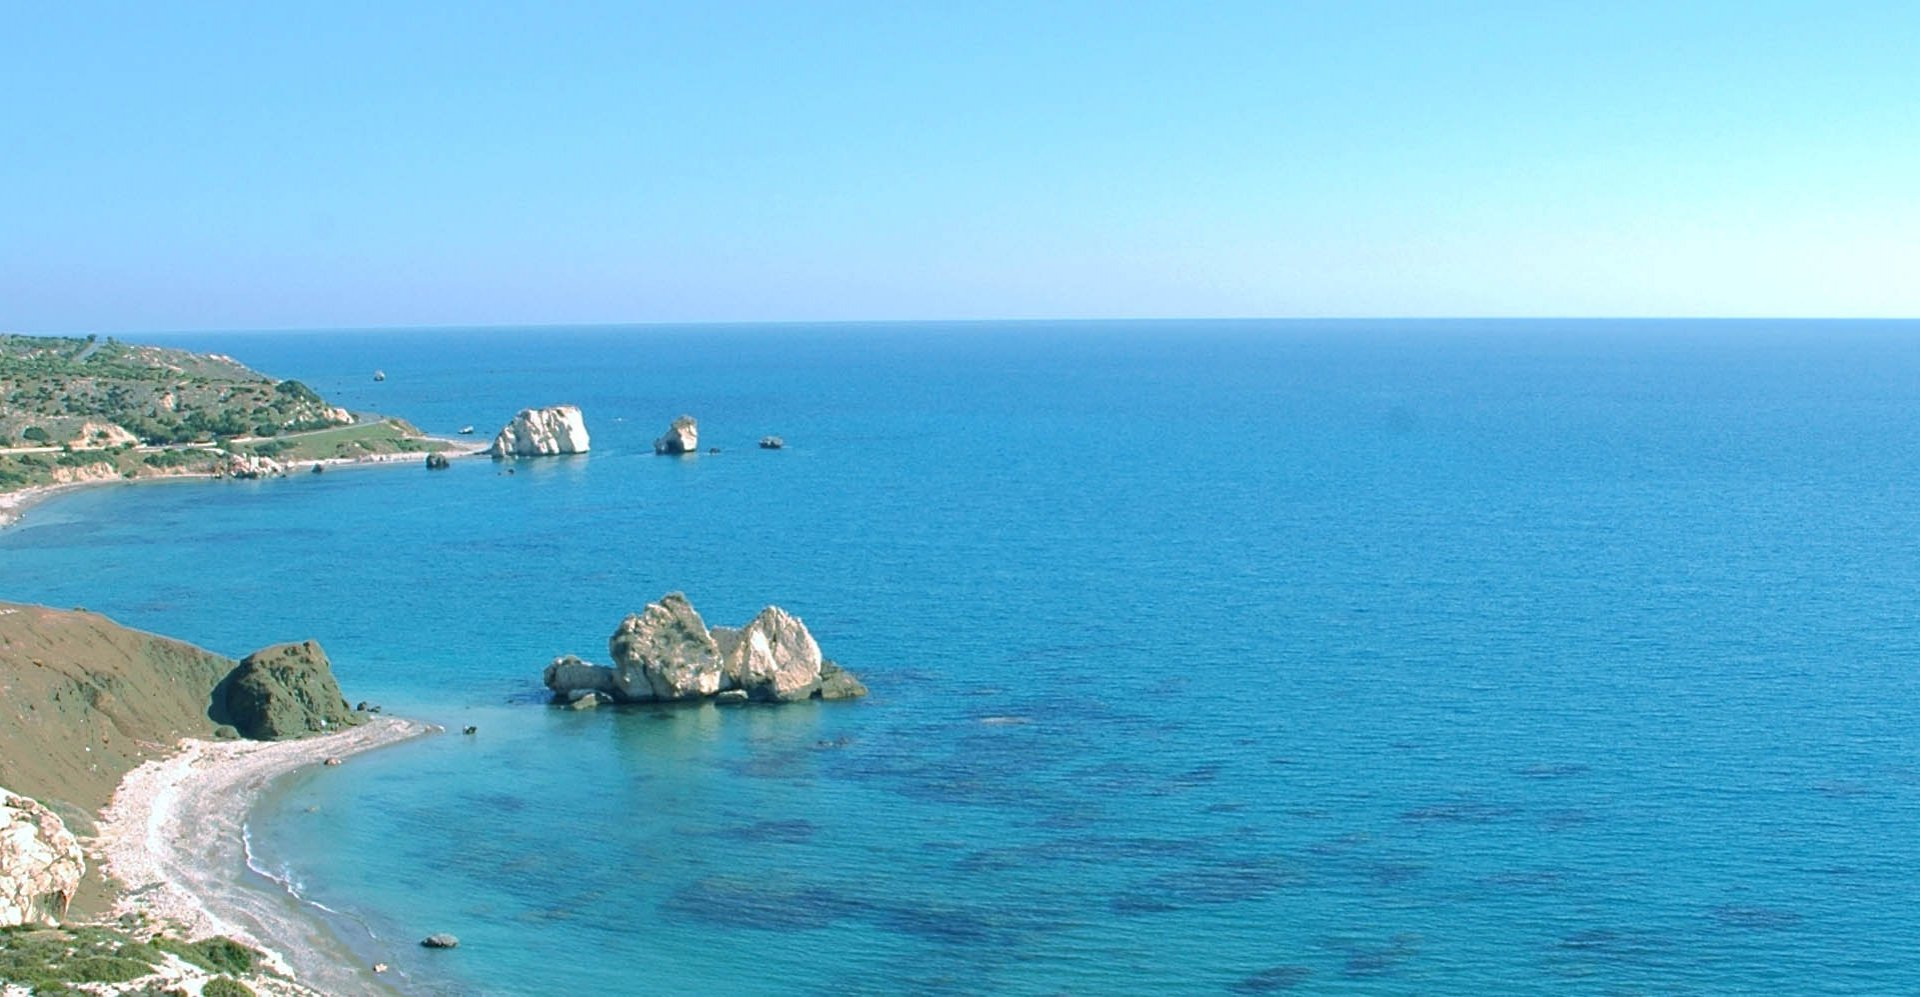 Holiday villas in Cyprus, Malta, Crete, Corfu and Rhodes